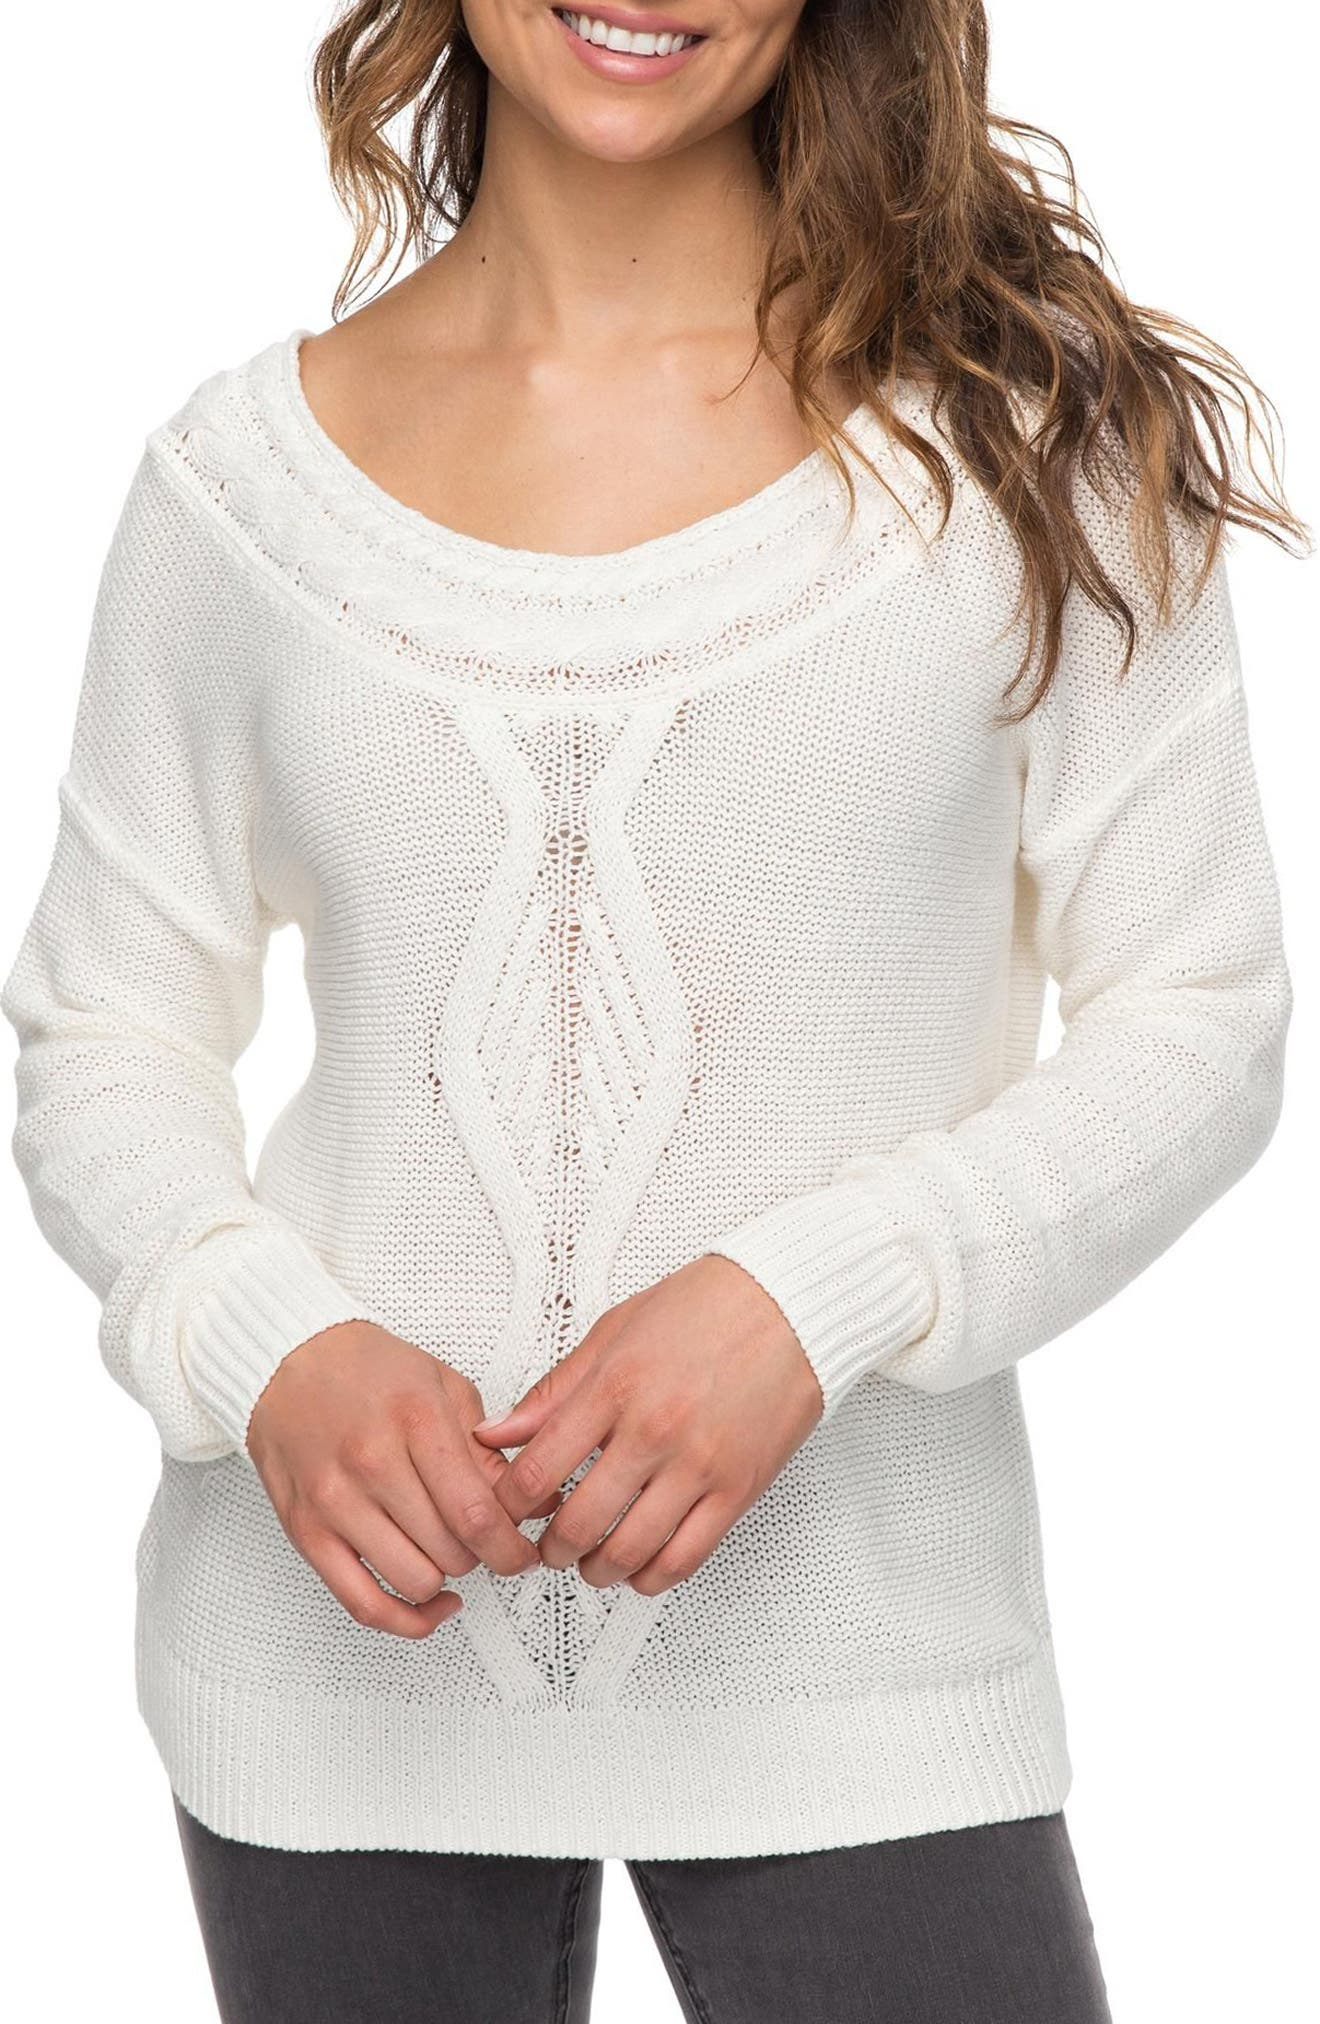 Choose to Shine Sweater,                             Main thumbnail 1, color,                             101